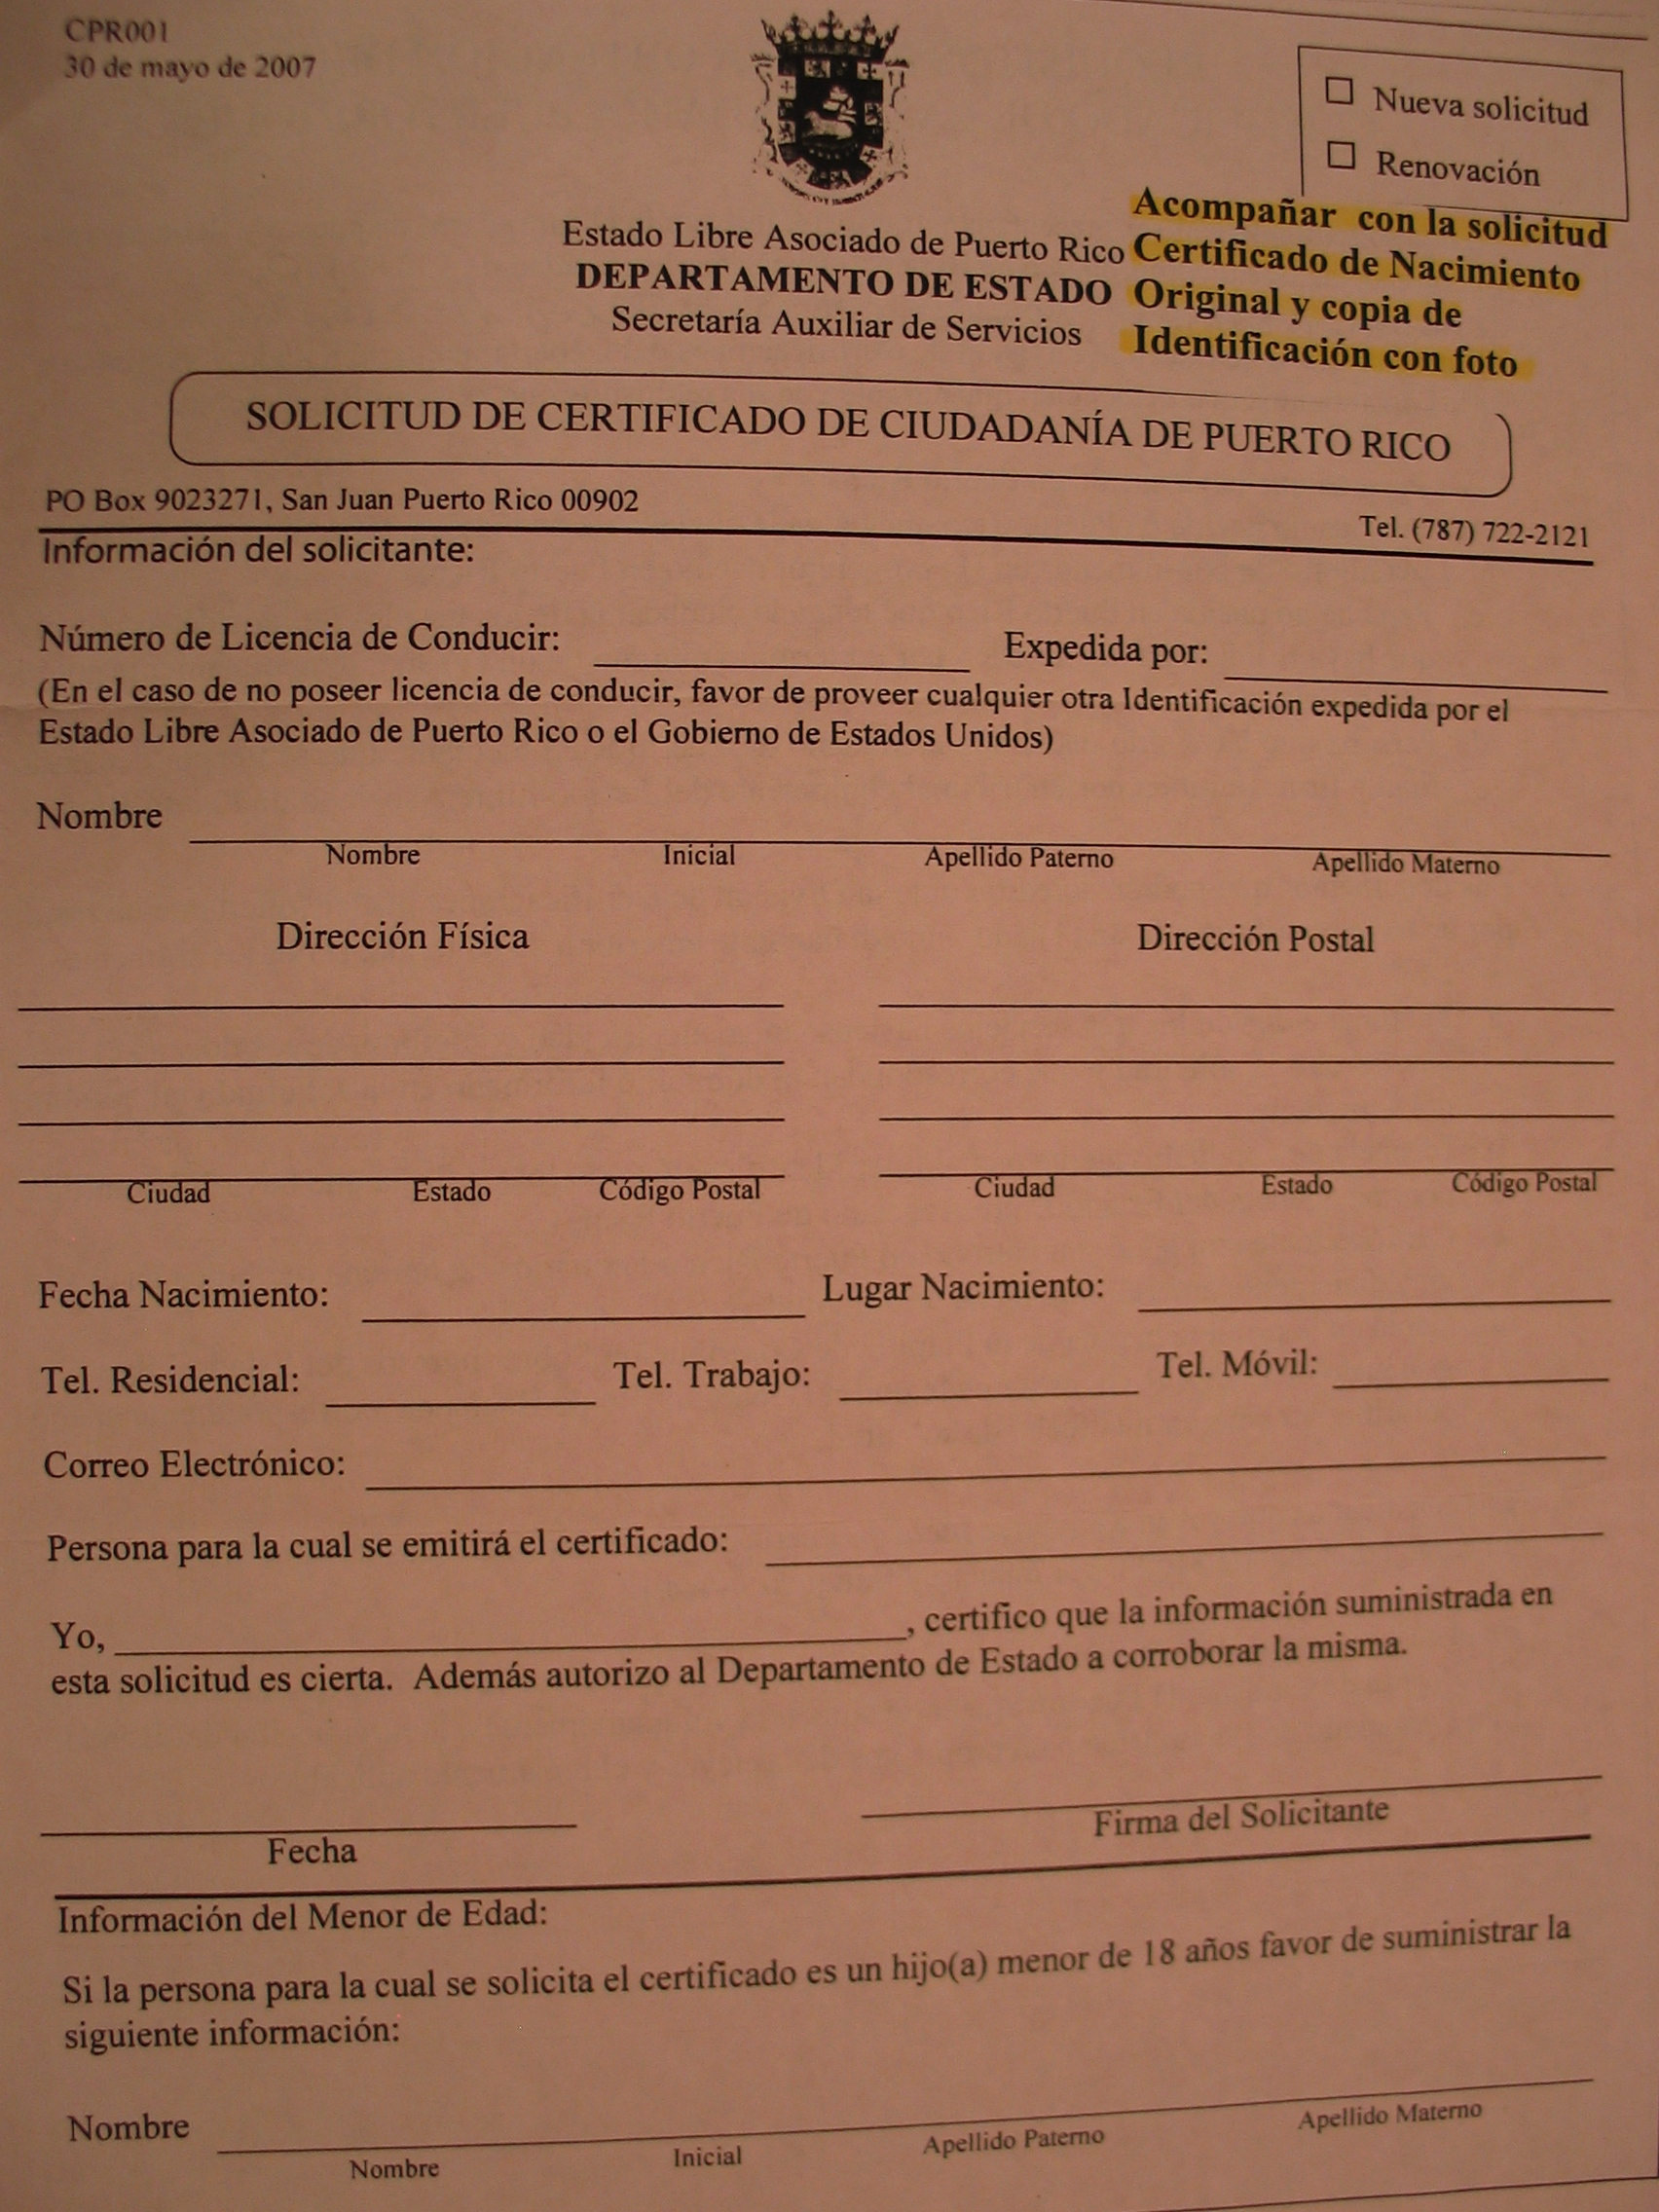 FileApplication Form for Certificate of Puerto Rican Citizenship – Citizenship Form